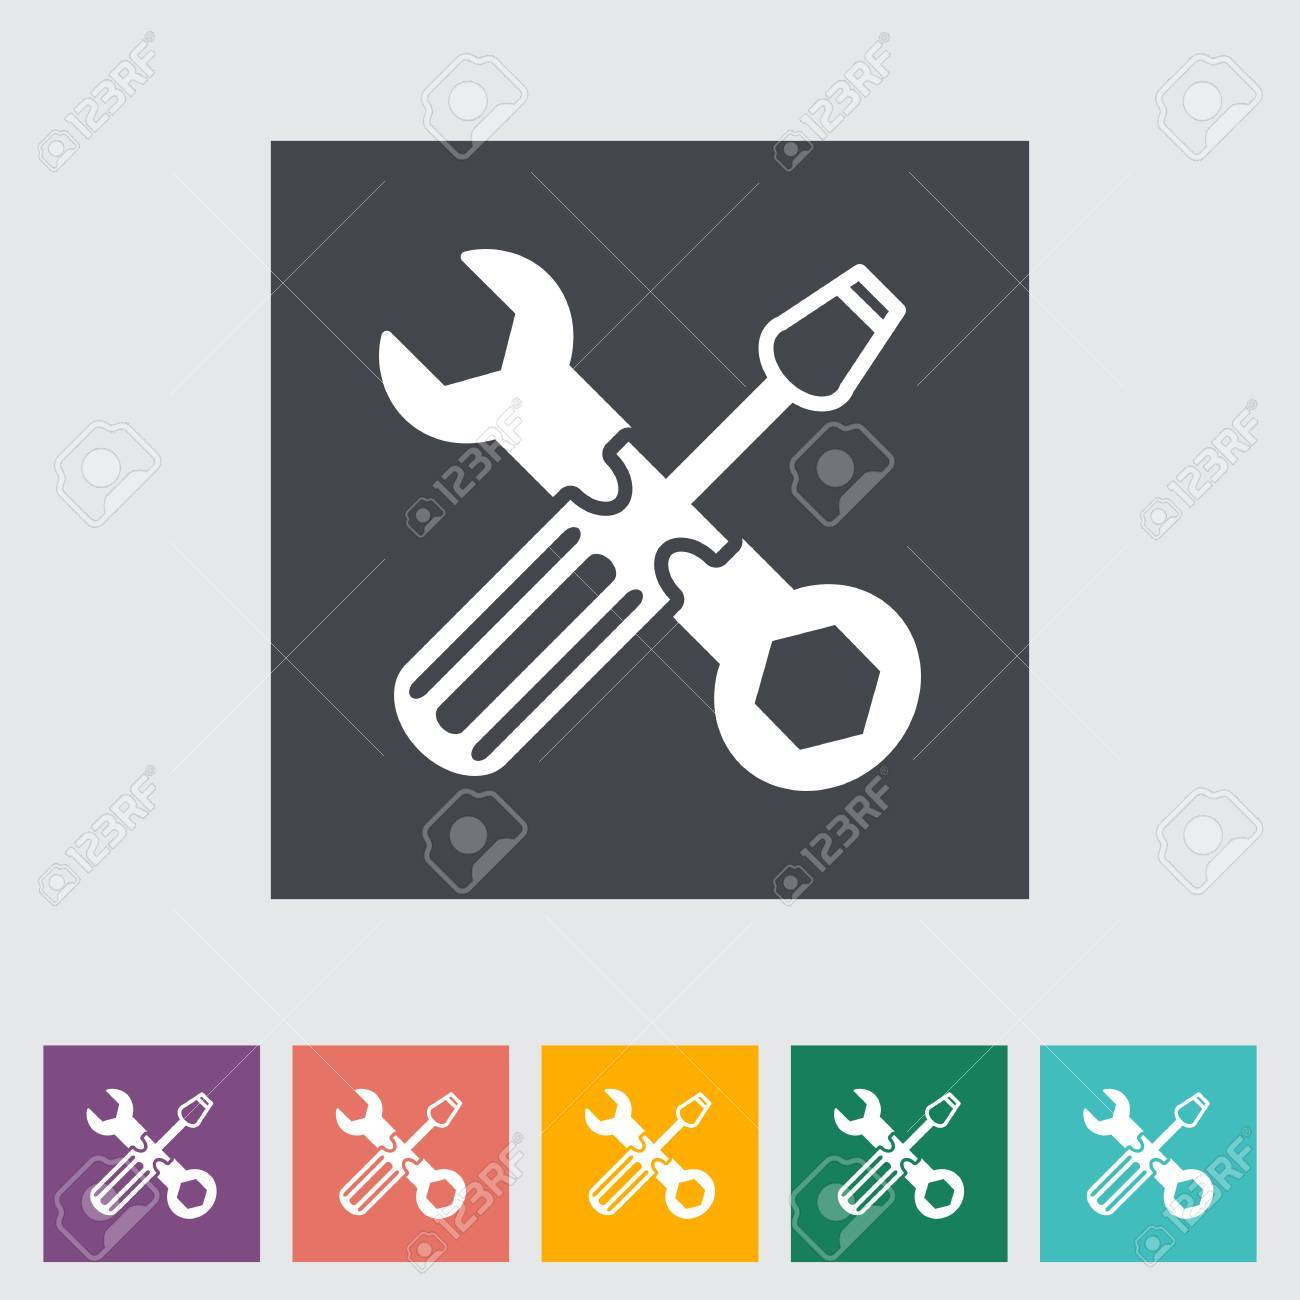 Repair flat icon. Stock Vector - 21114989